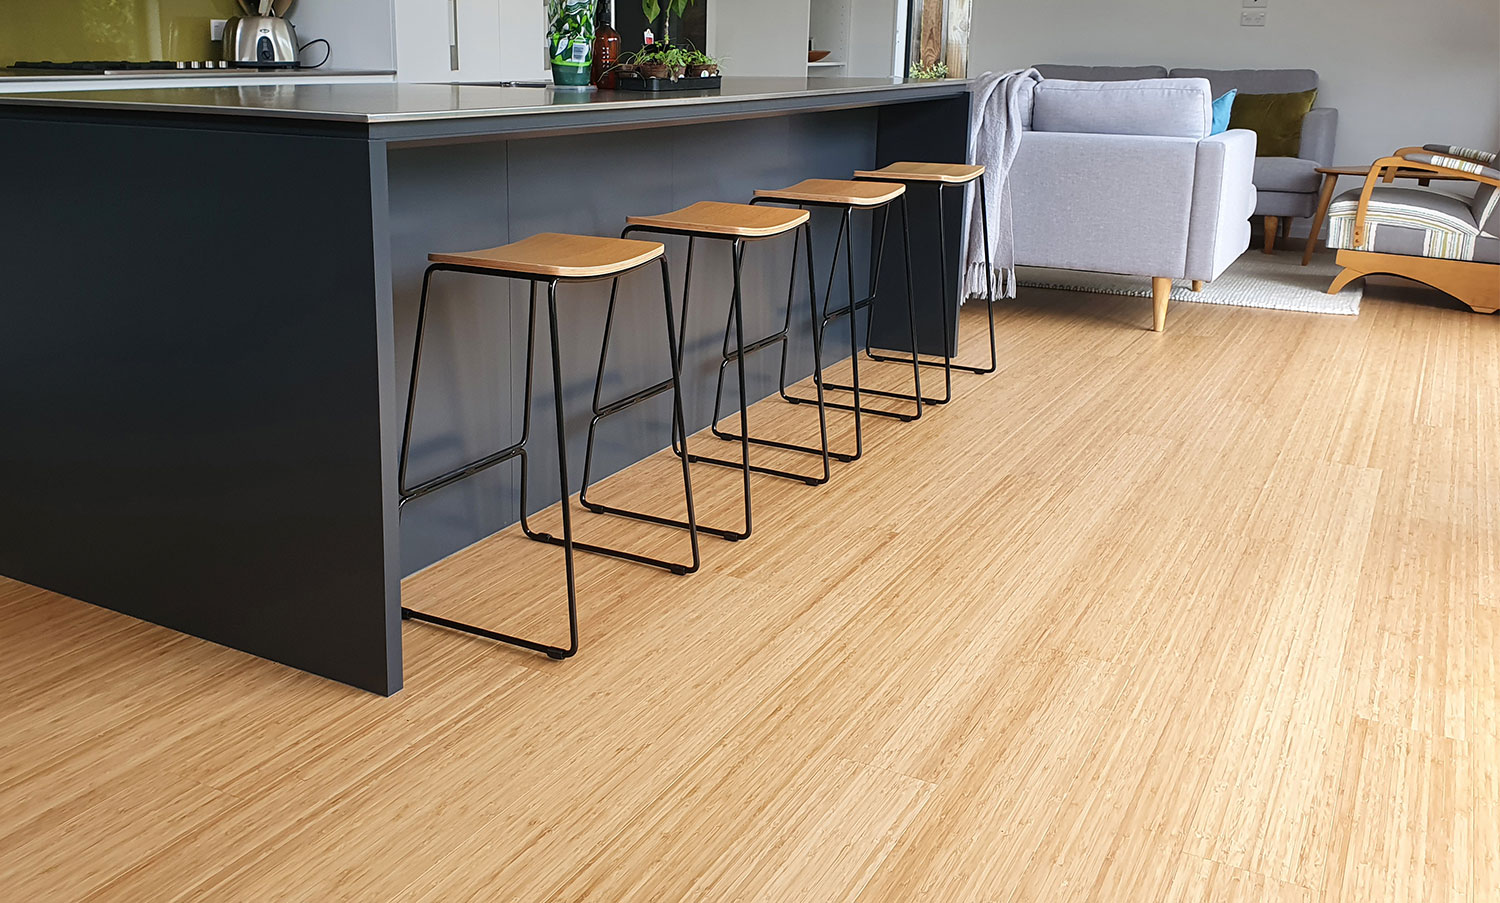 Modern kitchen with durable bamboo flooring